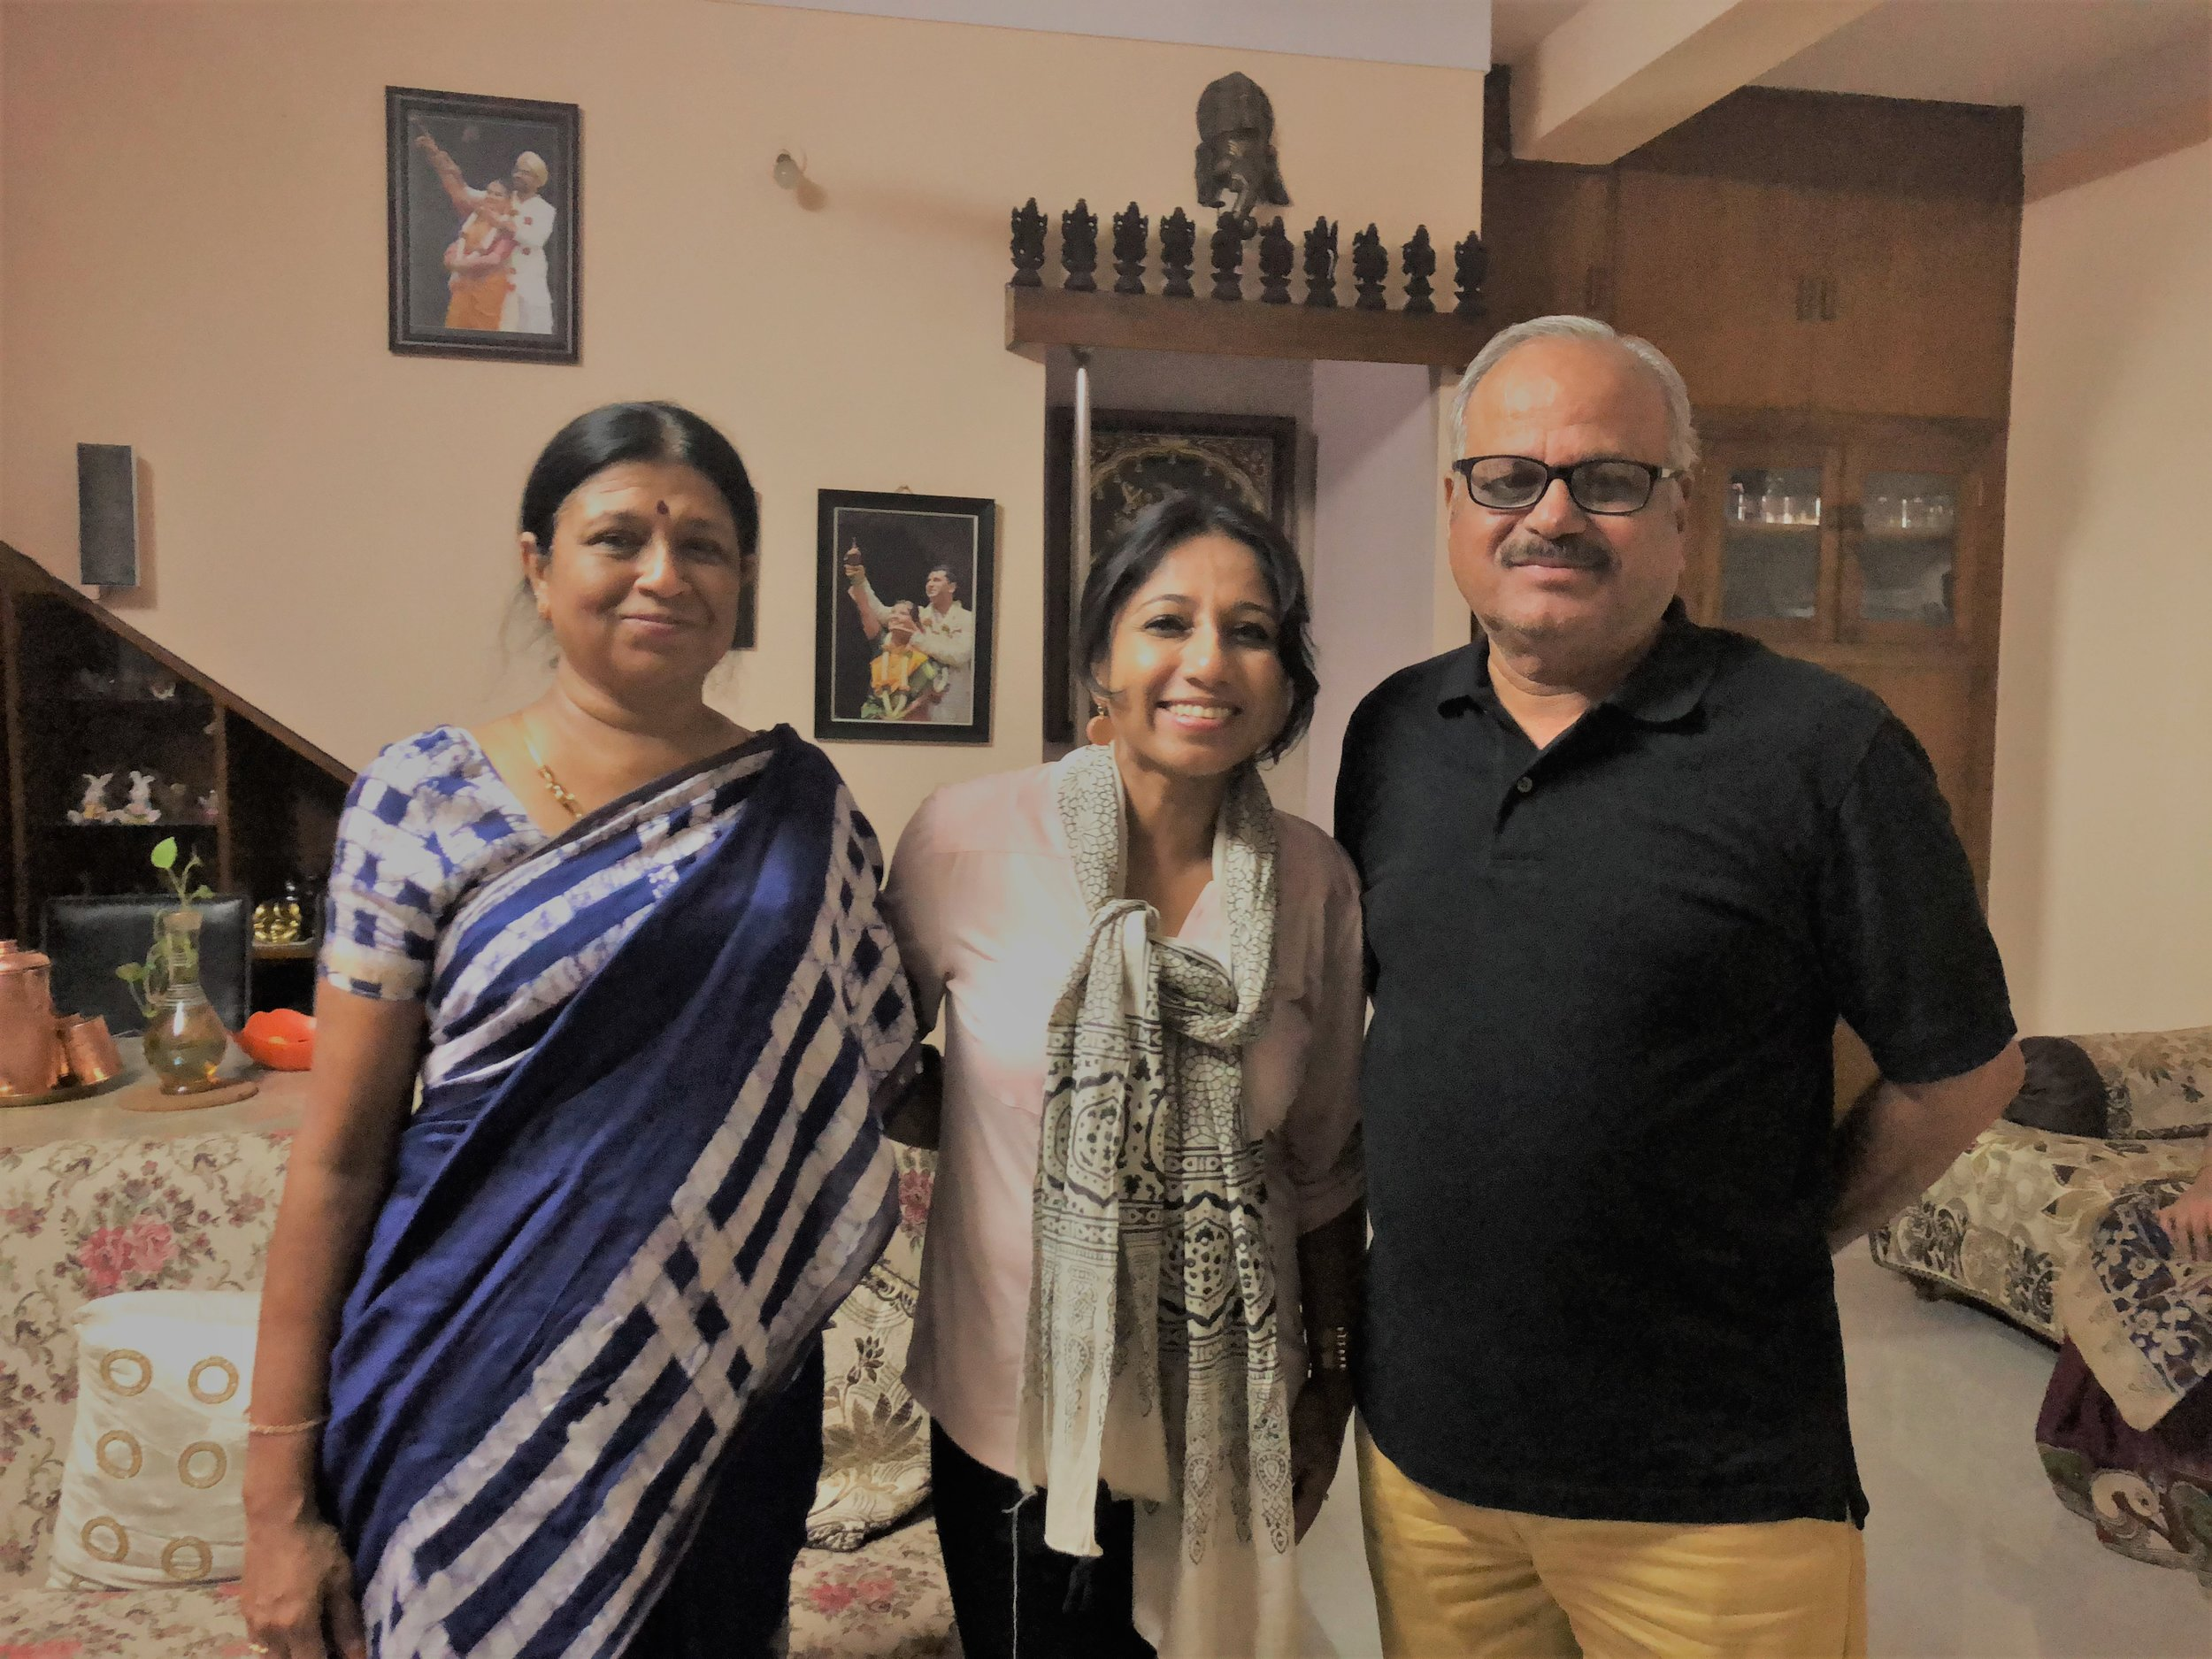 With Mrs. Chitra N Ravikumar, Deputy Director Systems, Income tax and Mr. P D Ravikumar, Manager, RBI—It was my honor to meet Mrs. and Mr. Ravikumar, my friend Sri Lakshmi's parents. Sincerely thankful to them for connecting me to their network and supporting the cause